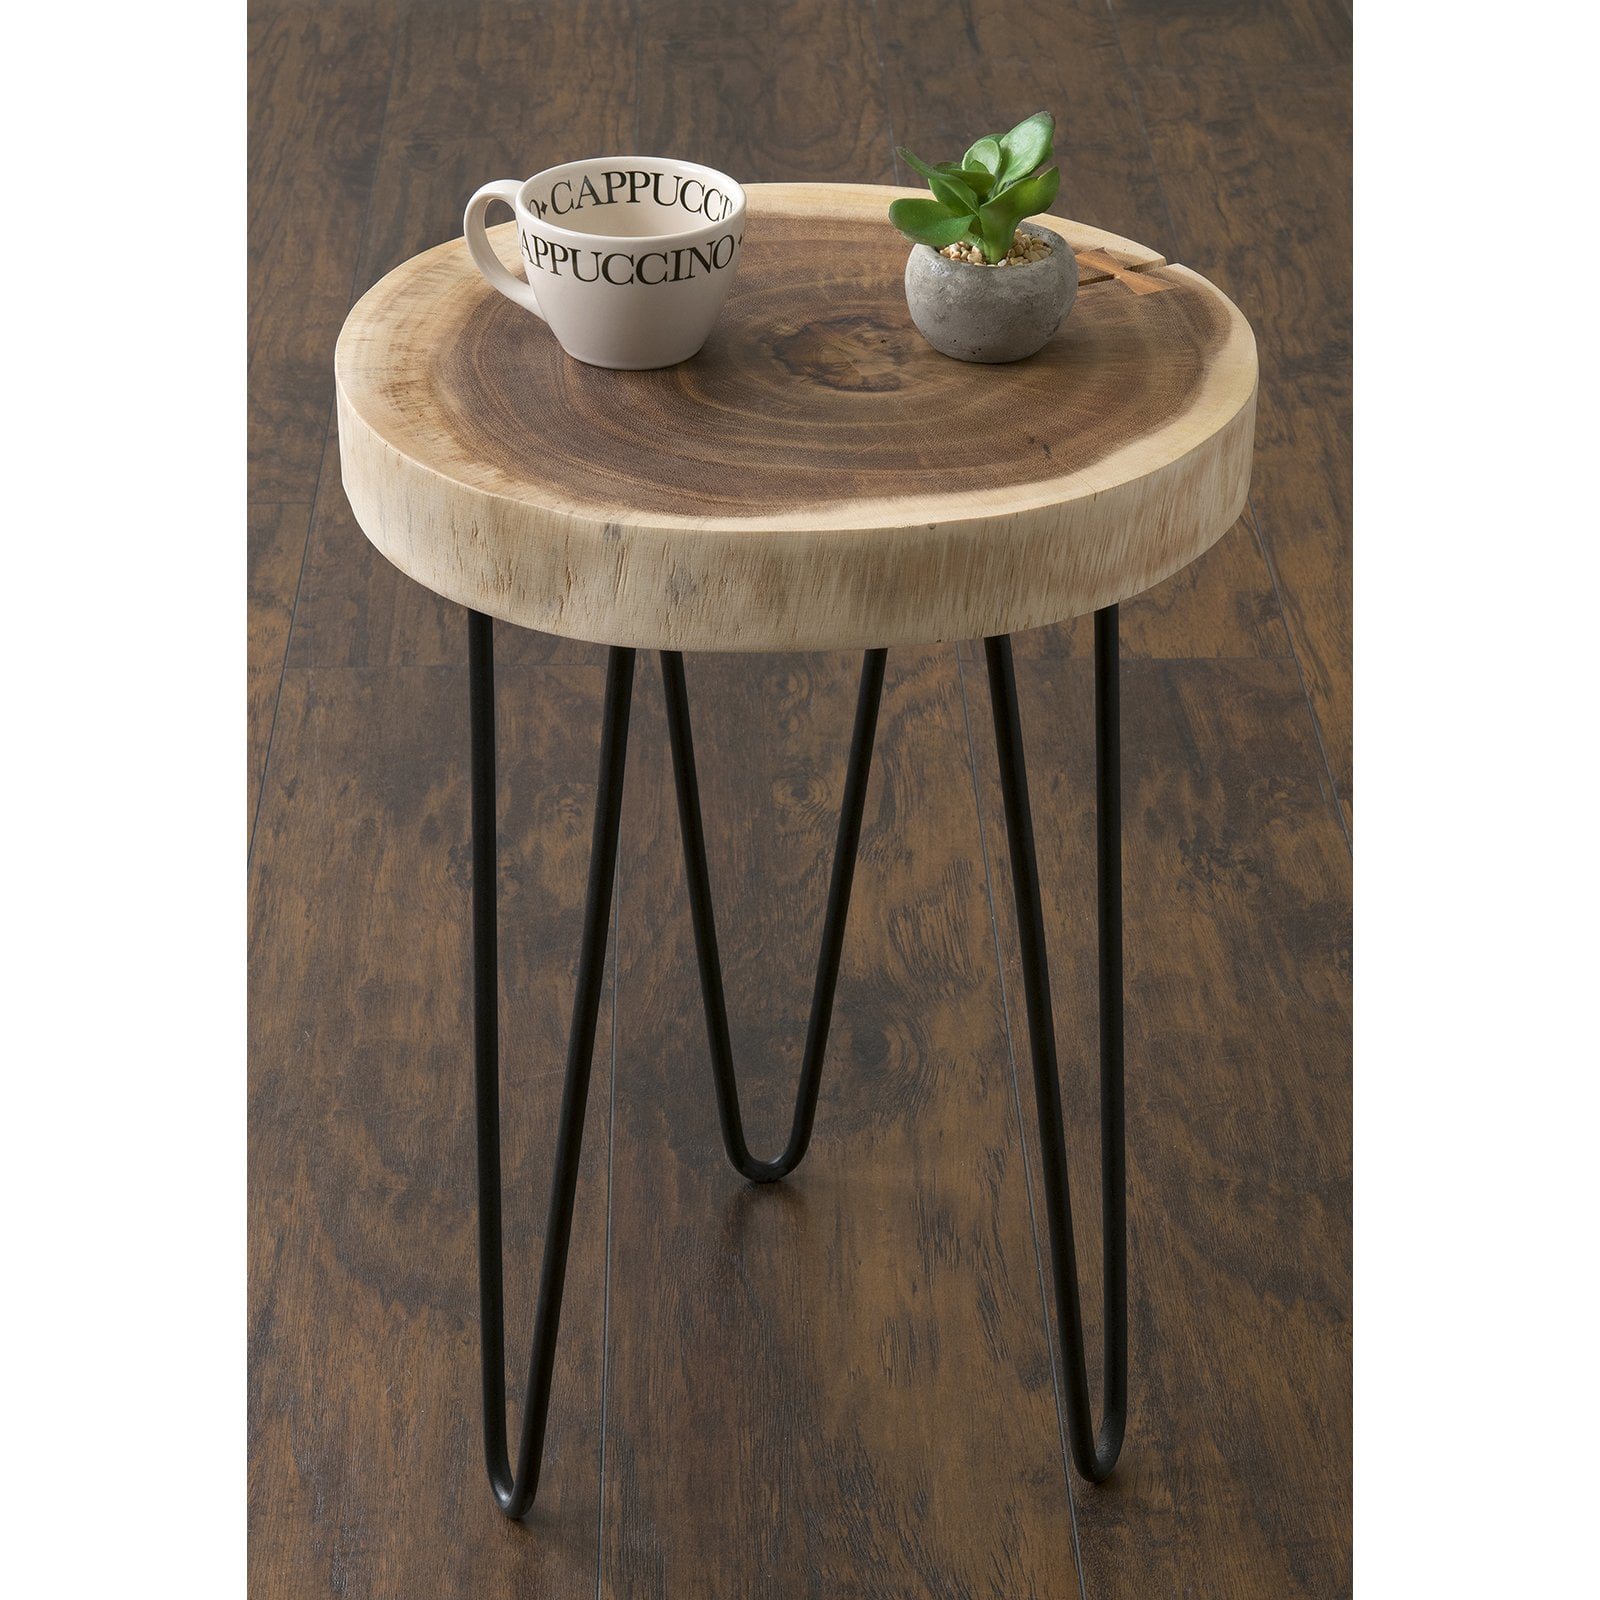 carbon loft julia brown teakwood round accent table east mains laredo free shipping today wide bedside cabinets vintage sofa designs metal counter height heaters bedroom lights